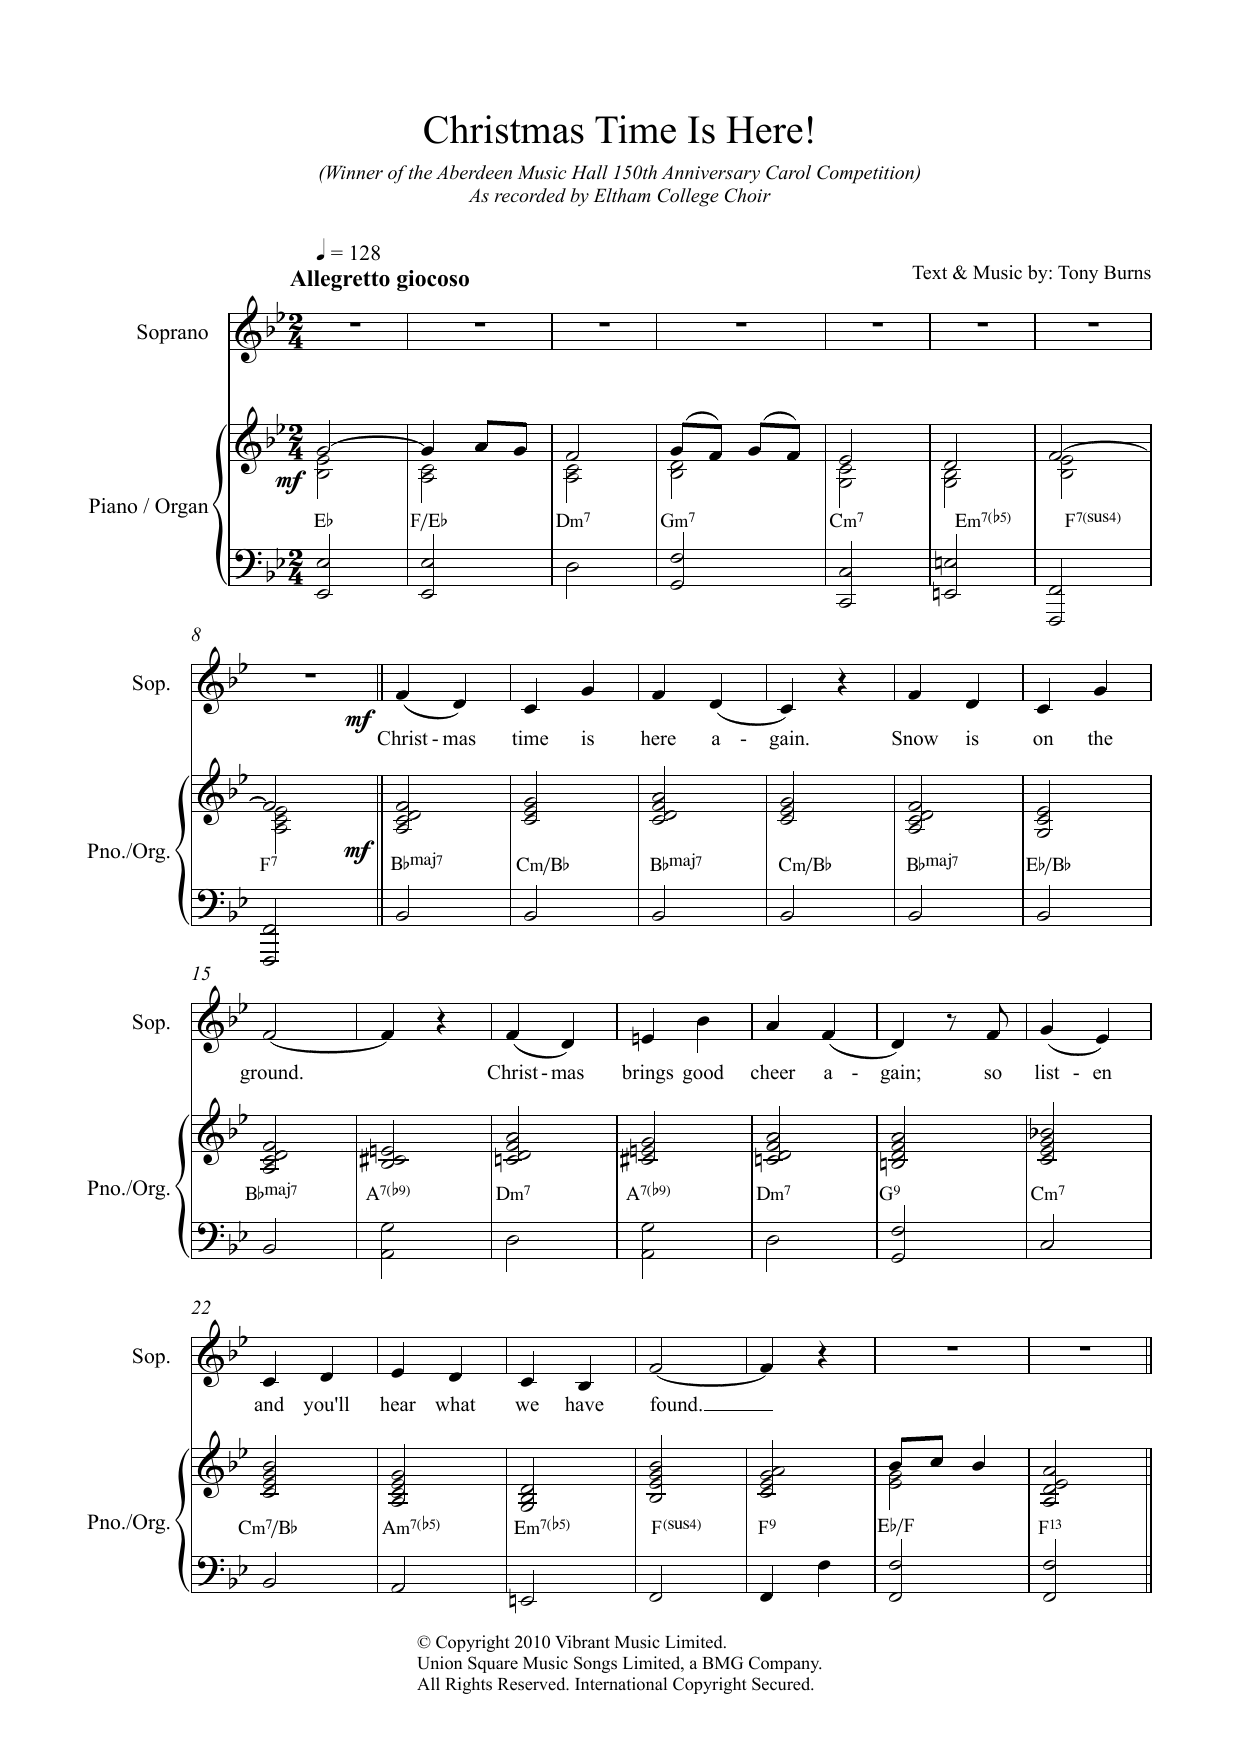 Christmas Time Is Here! Sheet Music